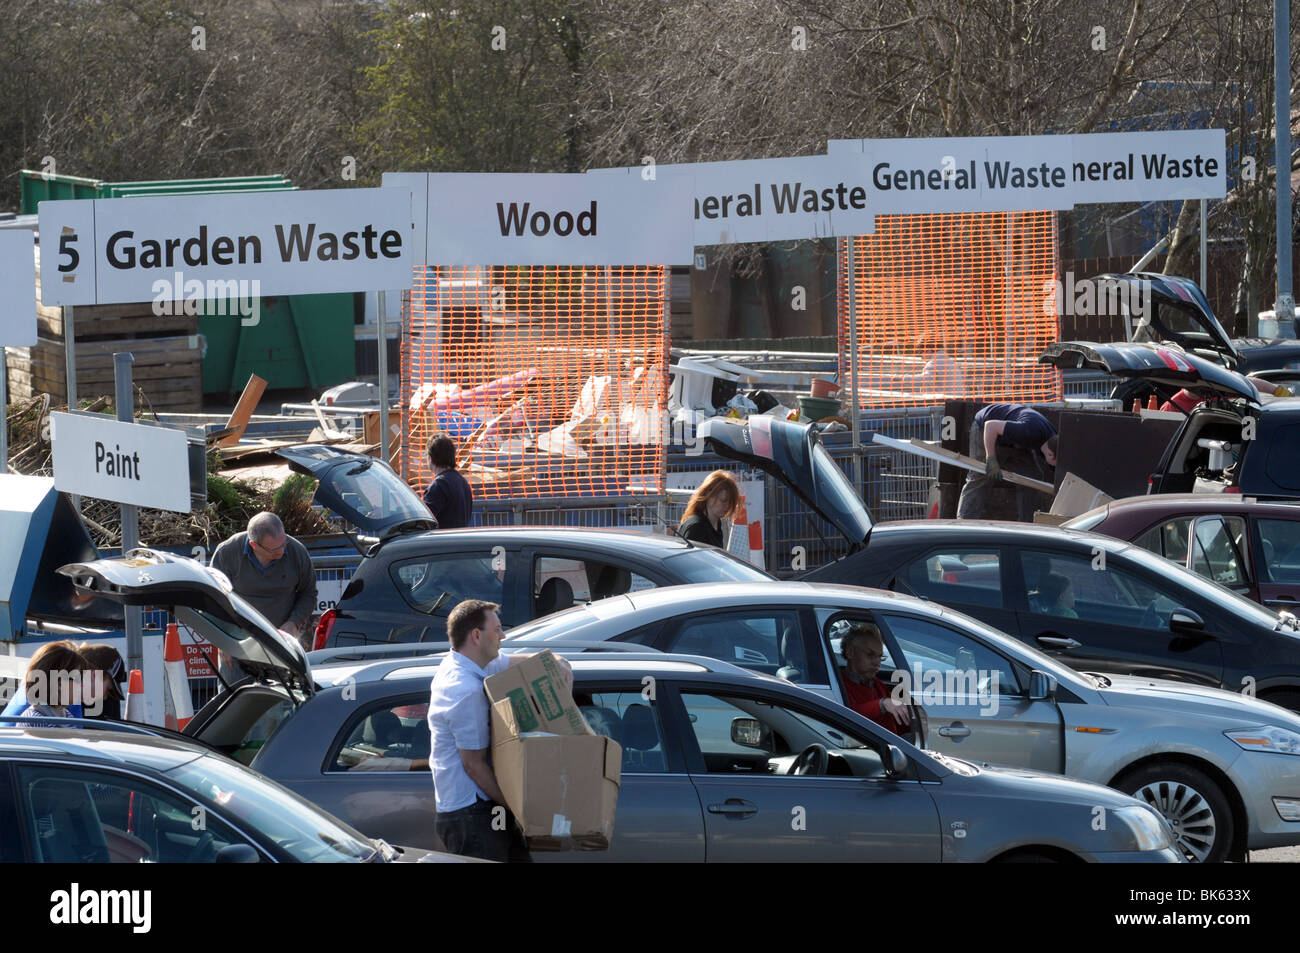 People dumping rubbish and waste at council recycling centre - Stock Image